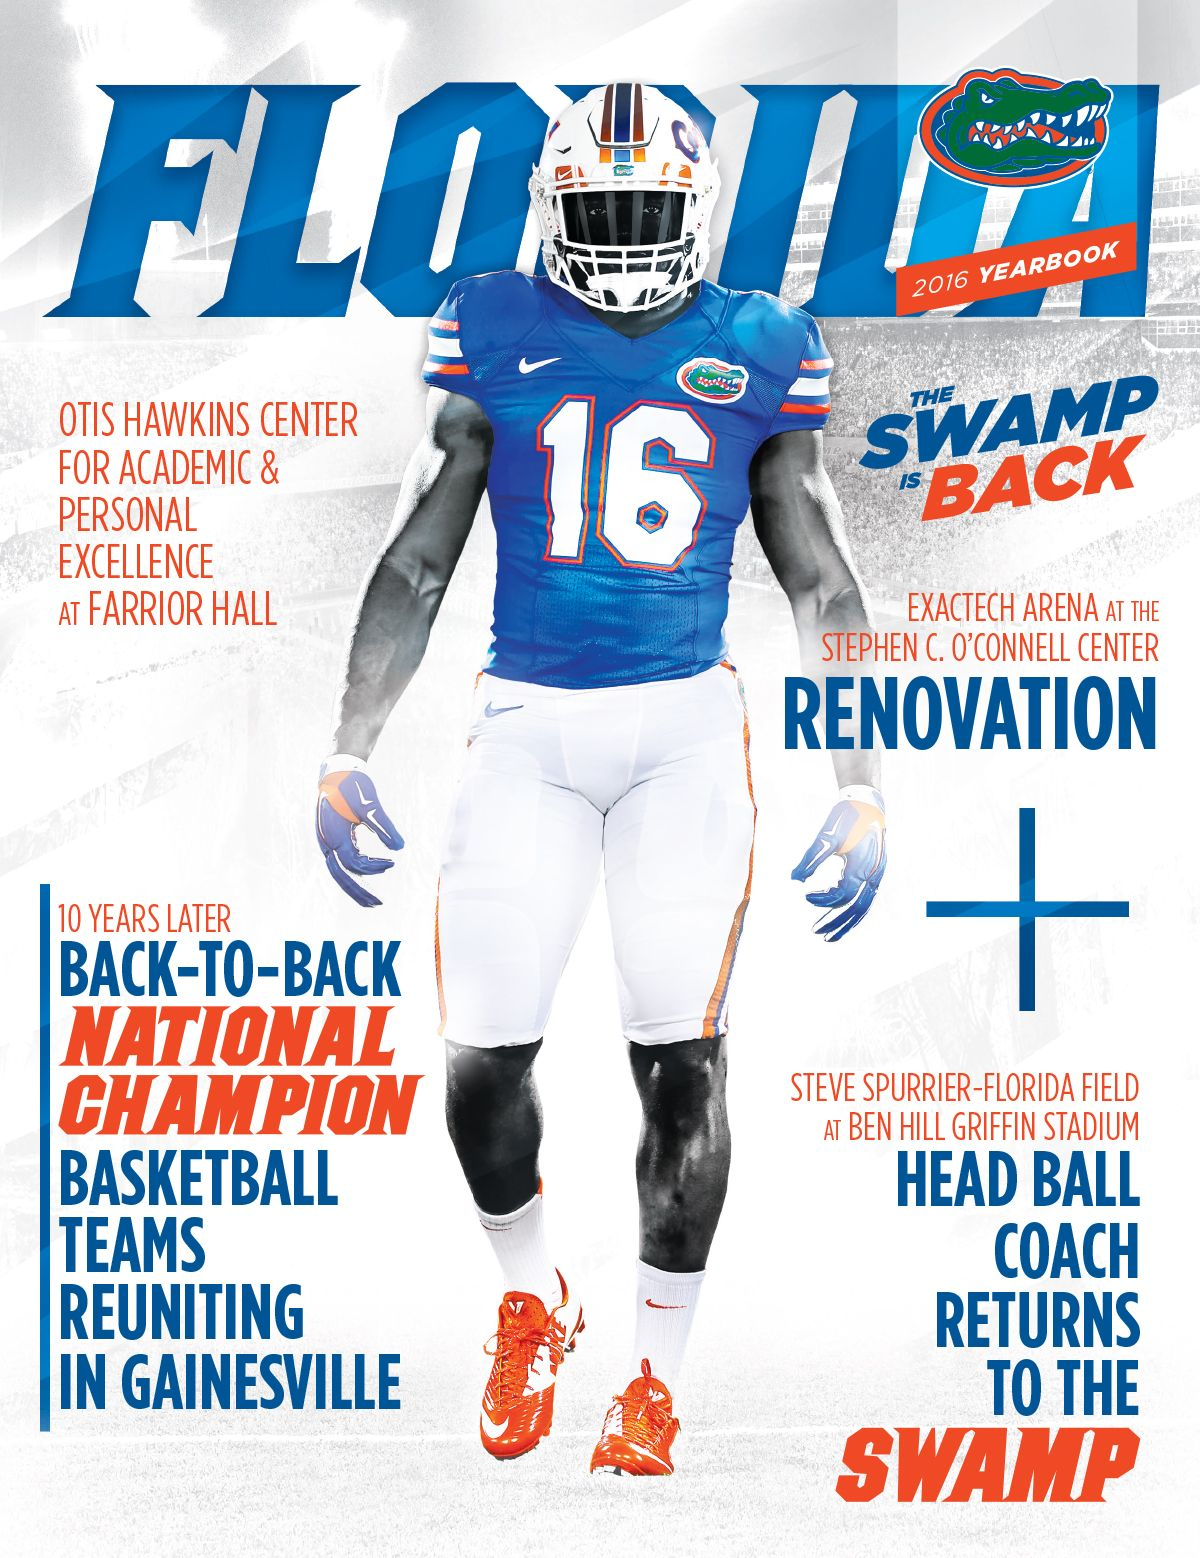 The Official 2016 Floridagators Football Yearbook Itsgreatuf Gators Team Coaching Gator Nation College Sports